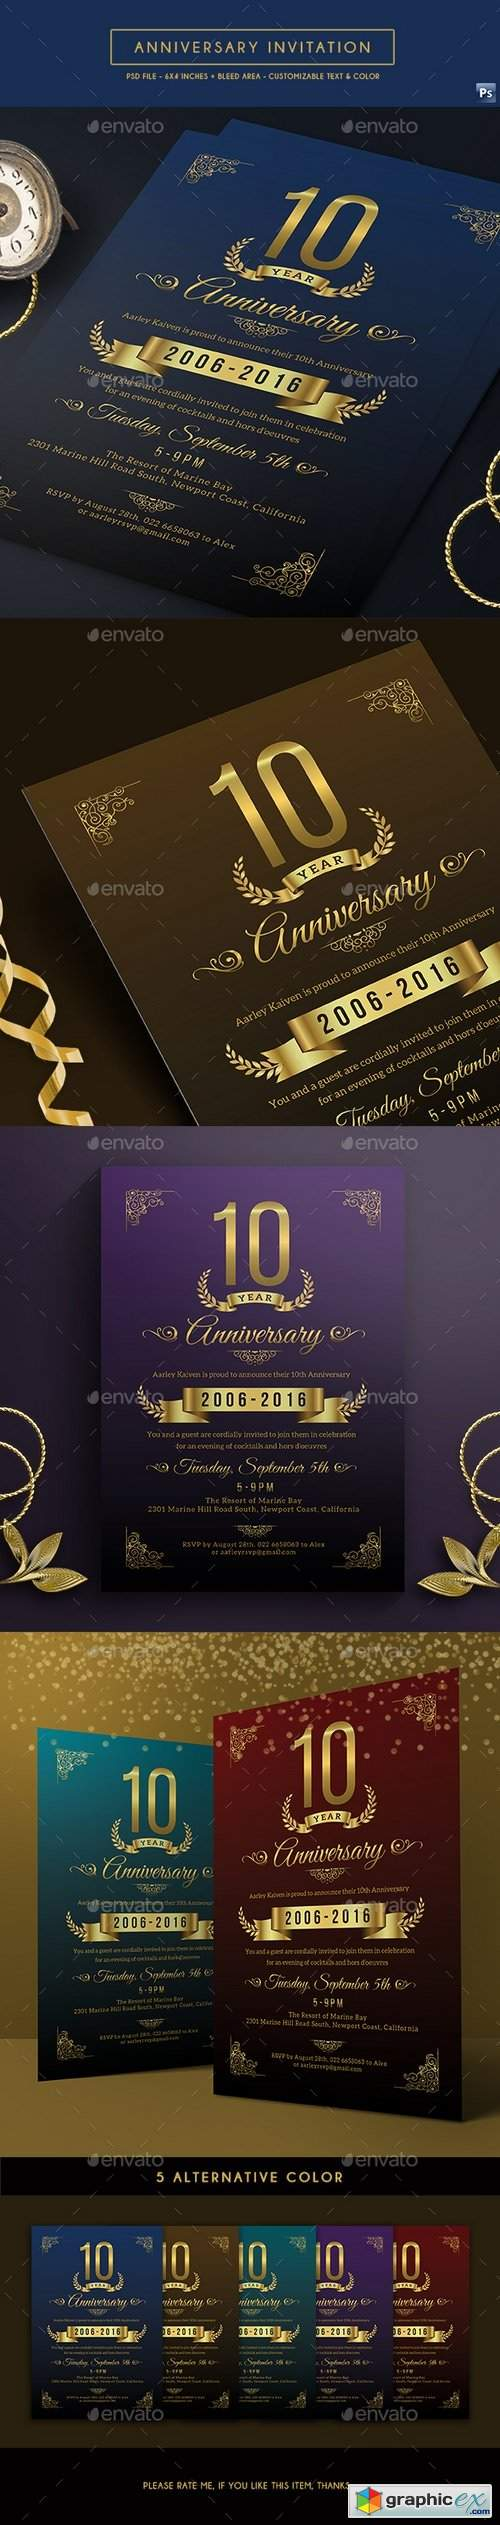 Anniversary Invitation 17546141